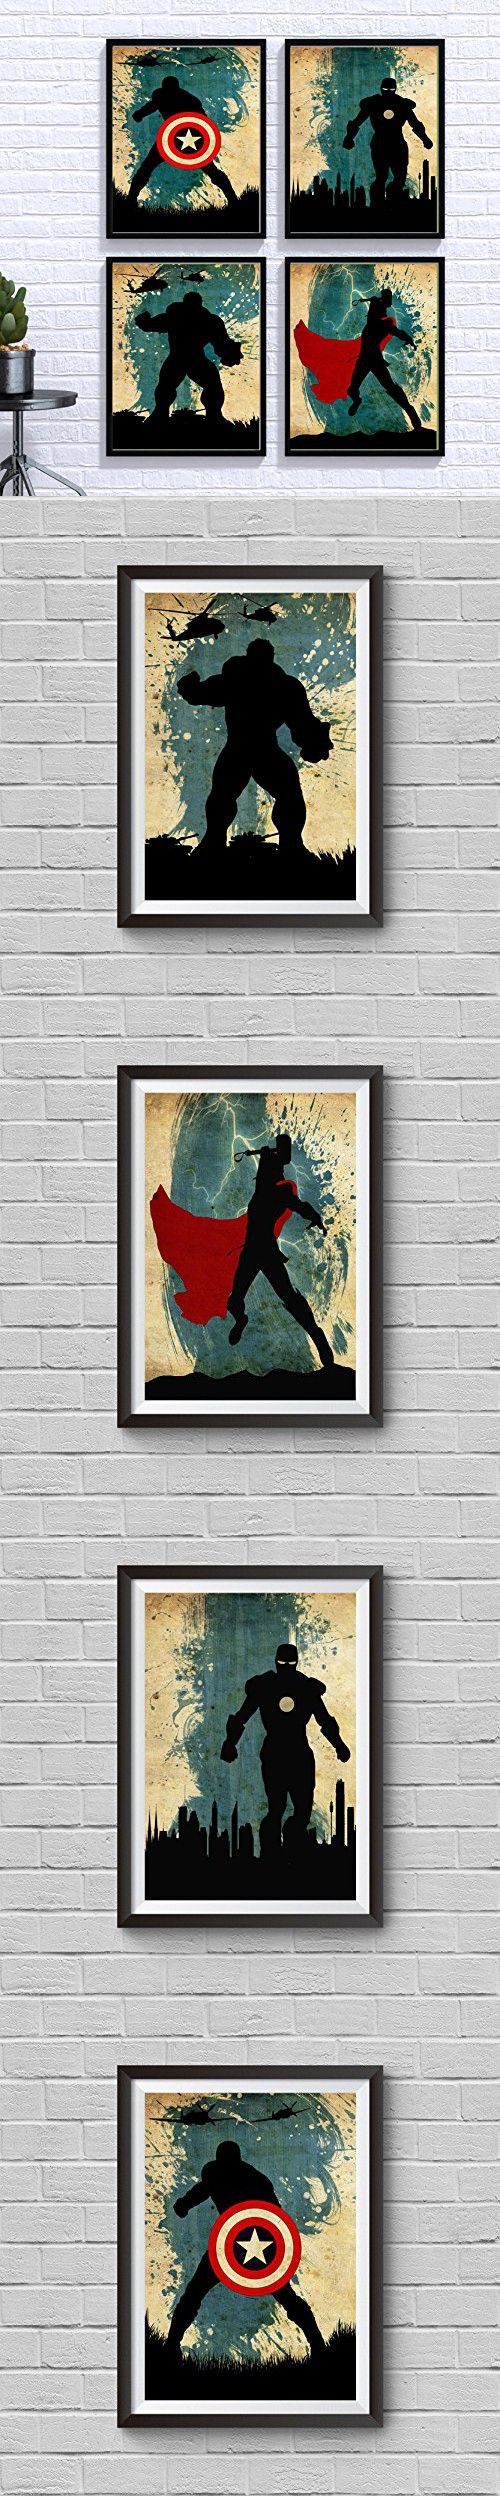 Avengers Poster Set Vintage Poster Marvel Movie Print Minimalist Avengers Poster Artwork Wall Art Home Decor Wall Hanging Captain America Iron Man Thor Hulk